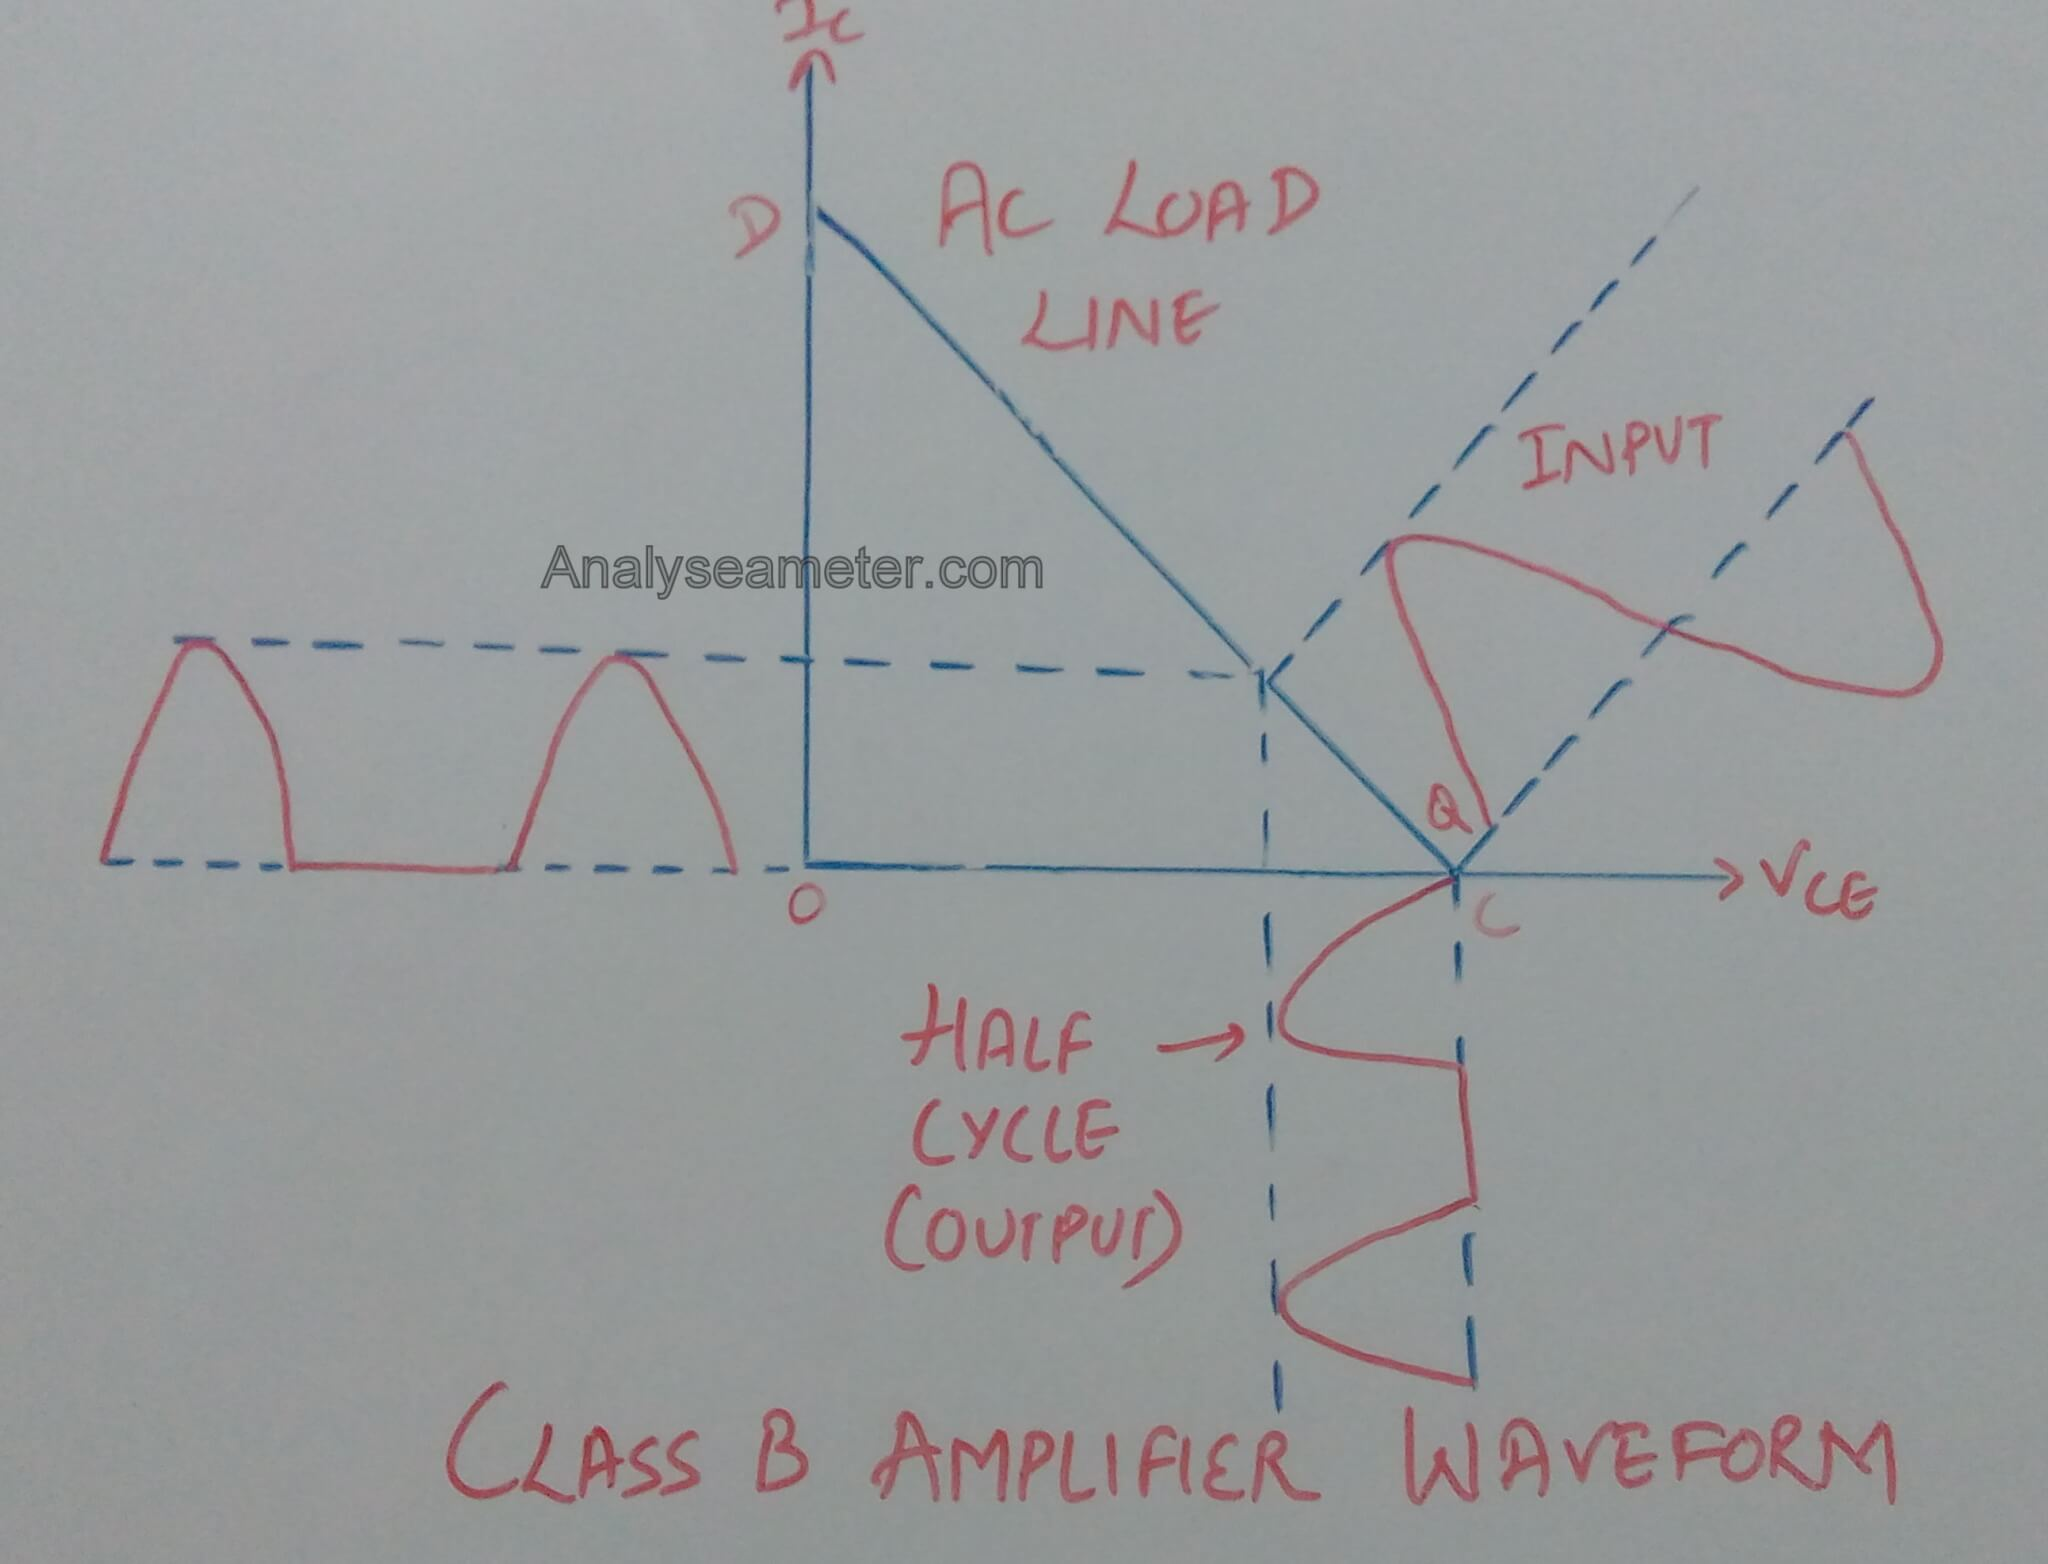 Power amplifiers image